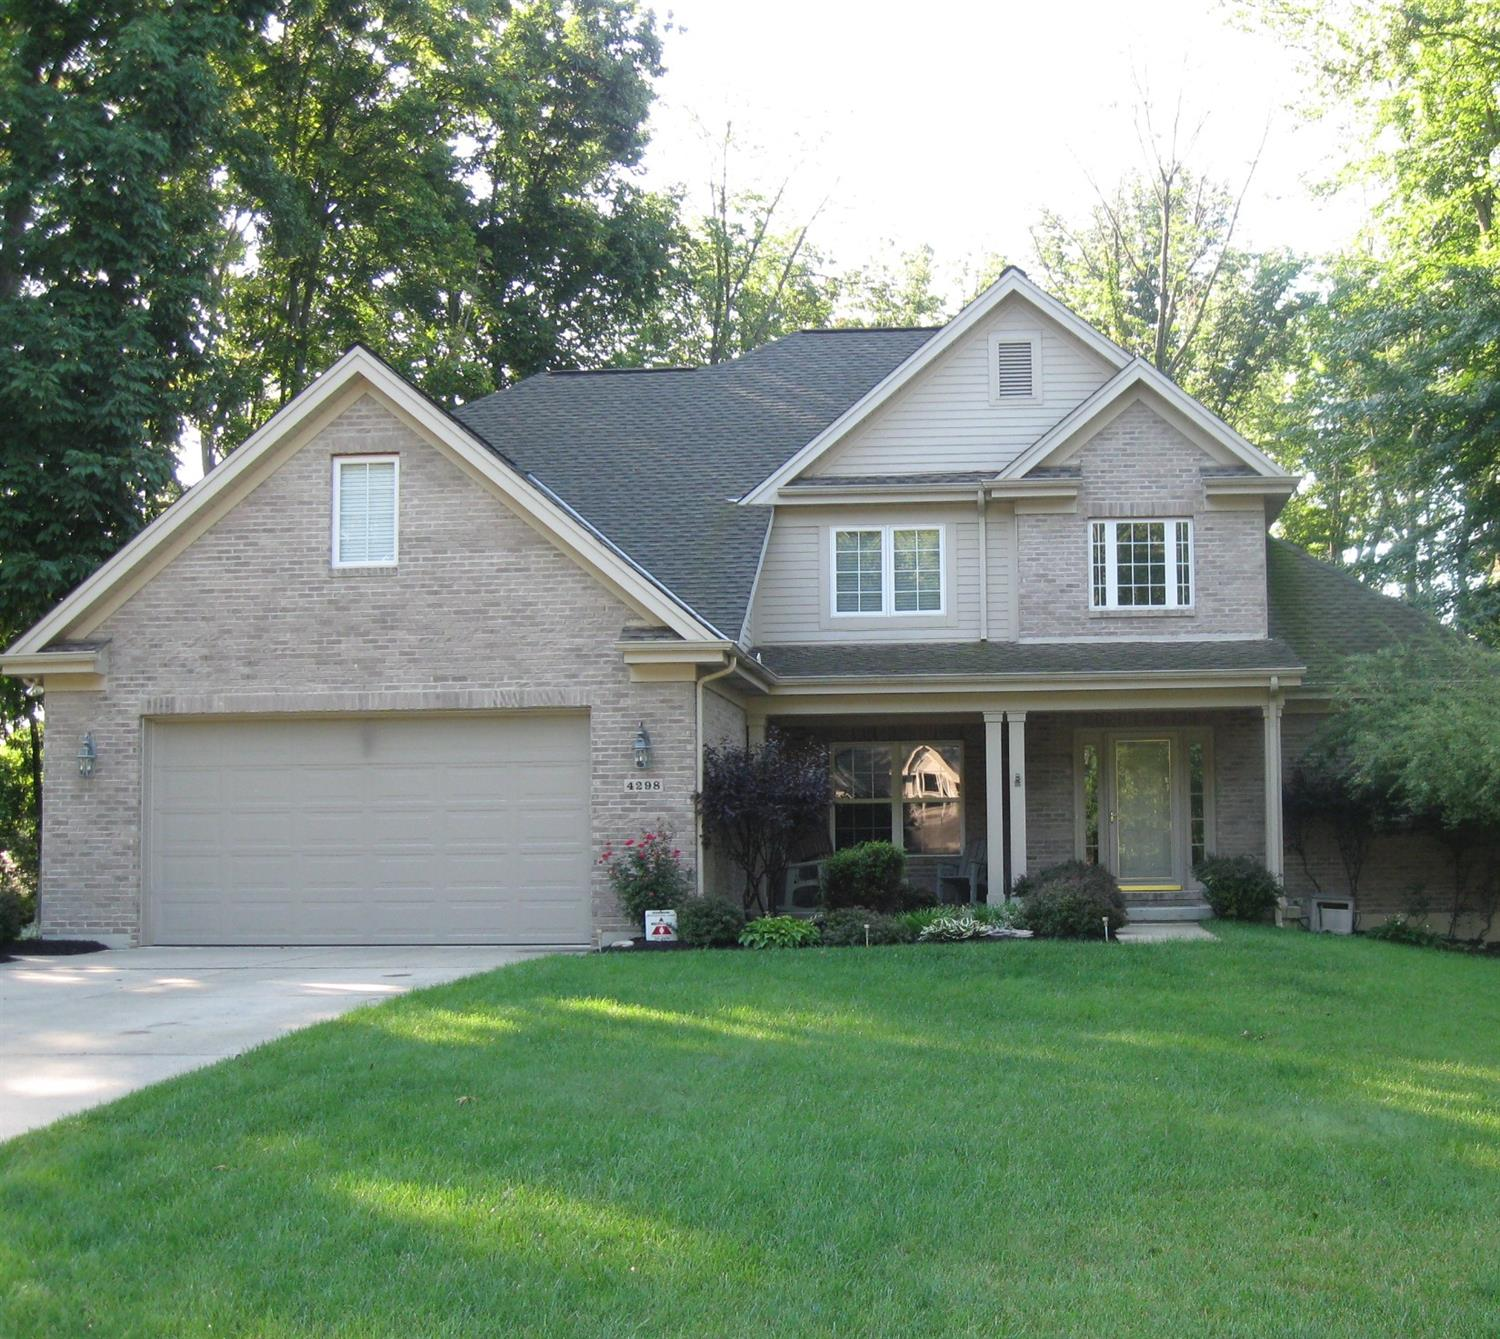 Property for sale at 4298 Trotters Way, Batavia Twp,  Ohio 45103